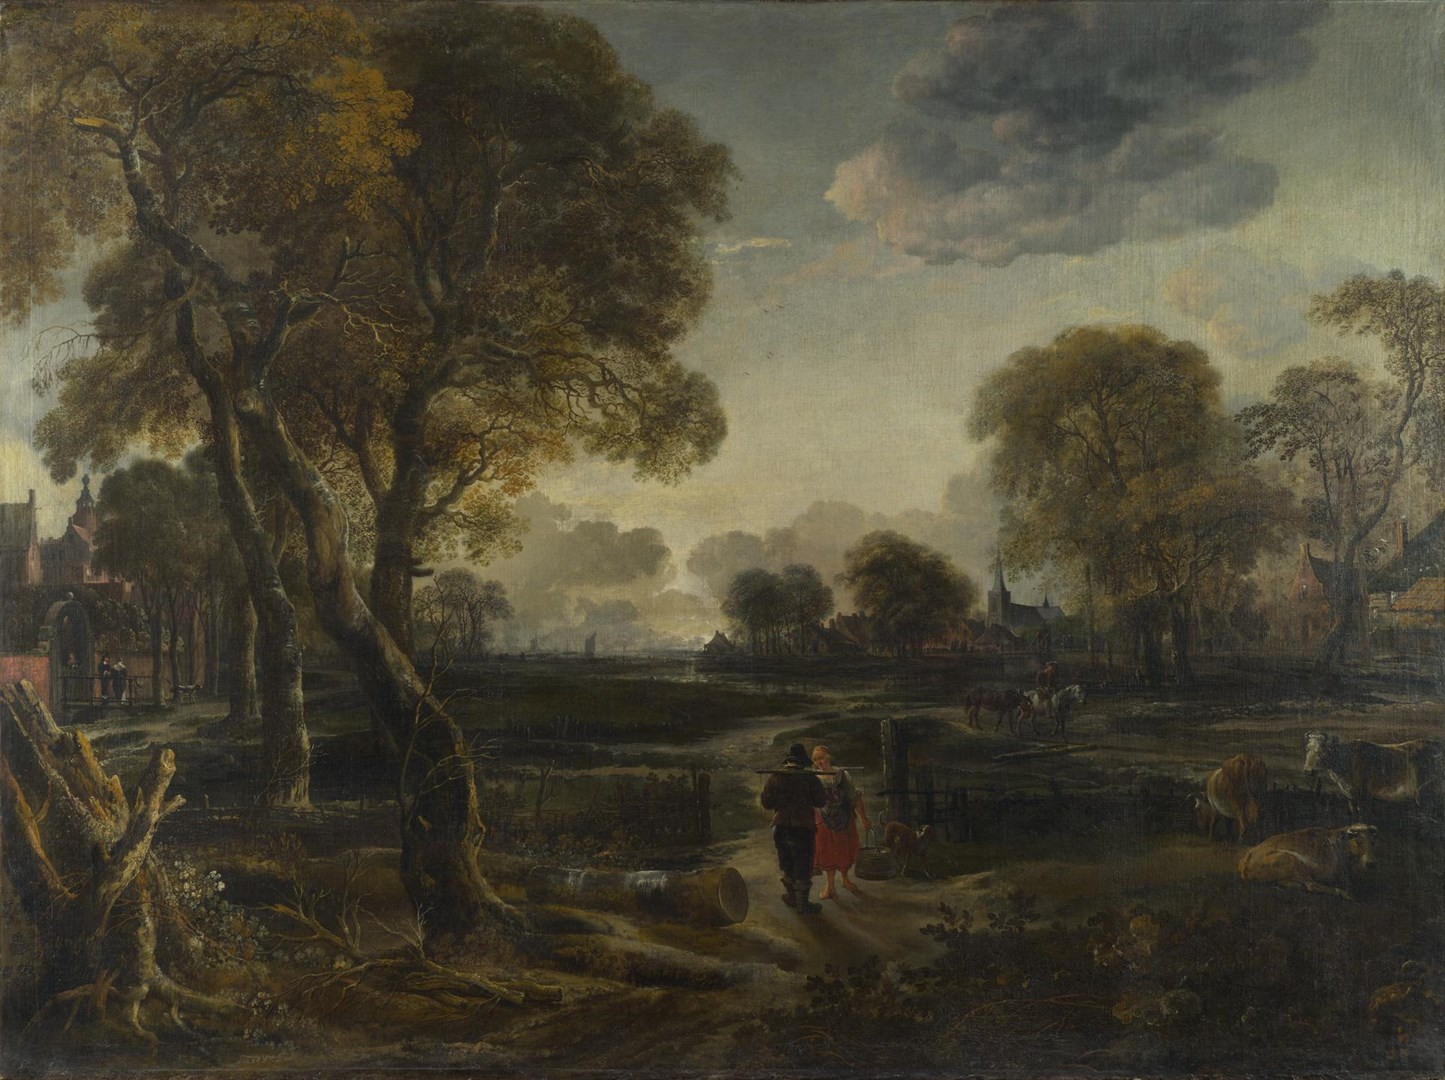 An Evening View near a Village by Aert van der Neer